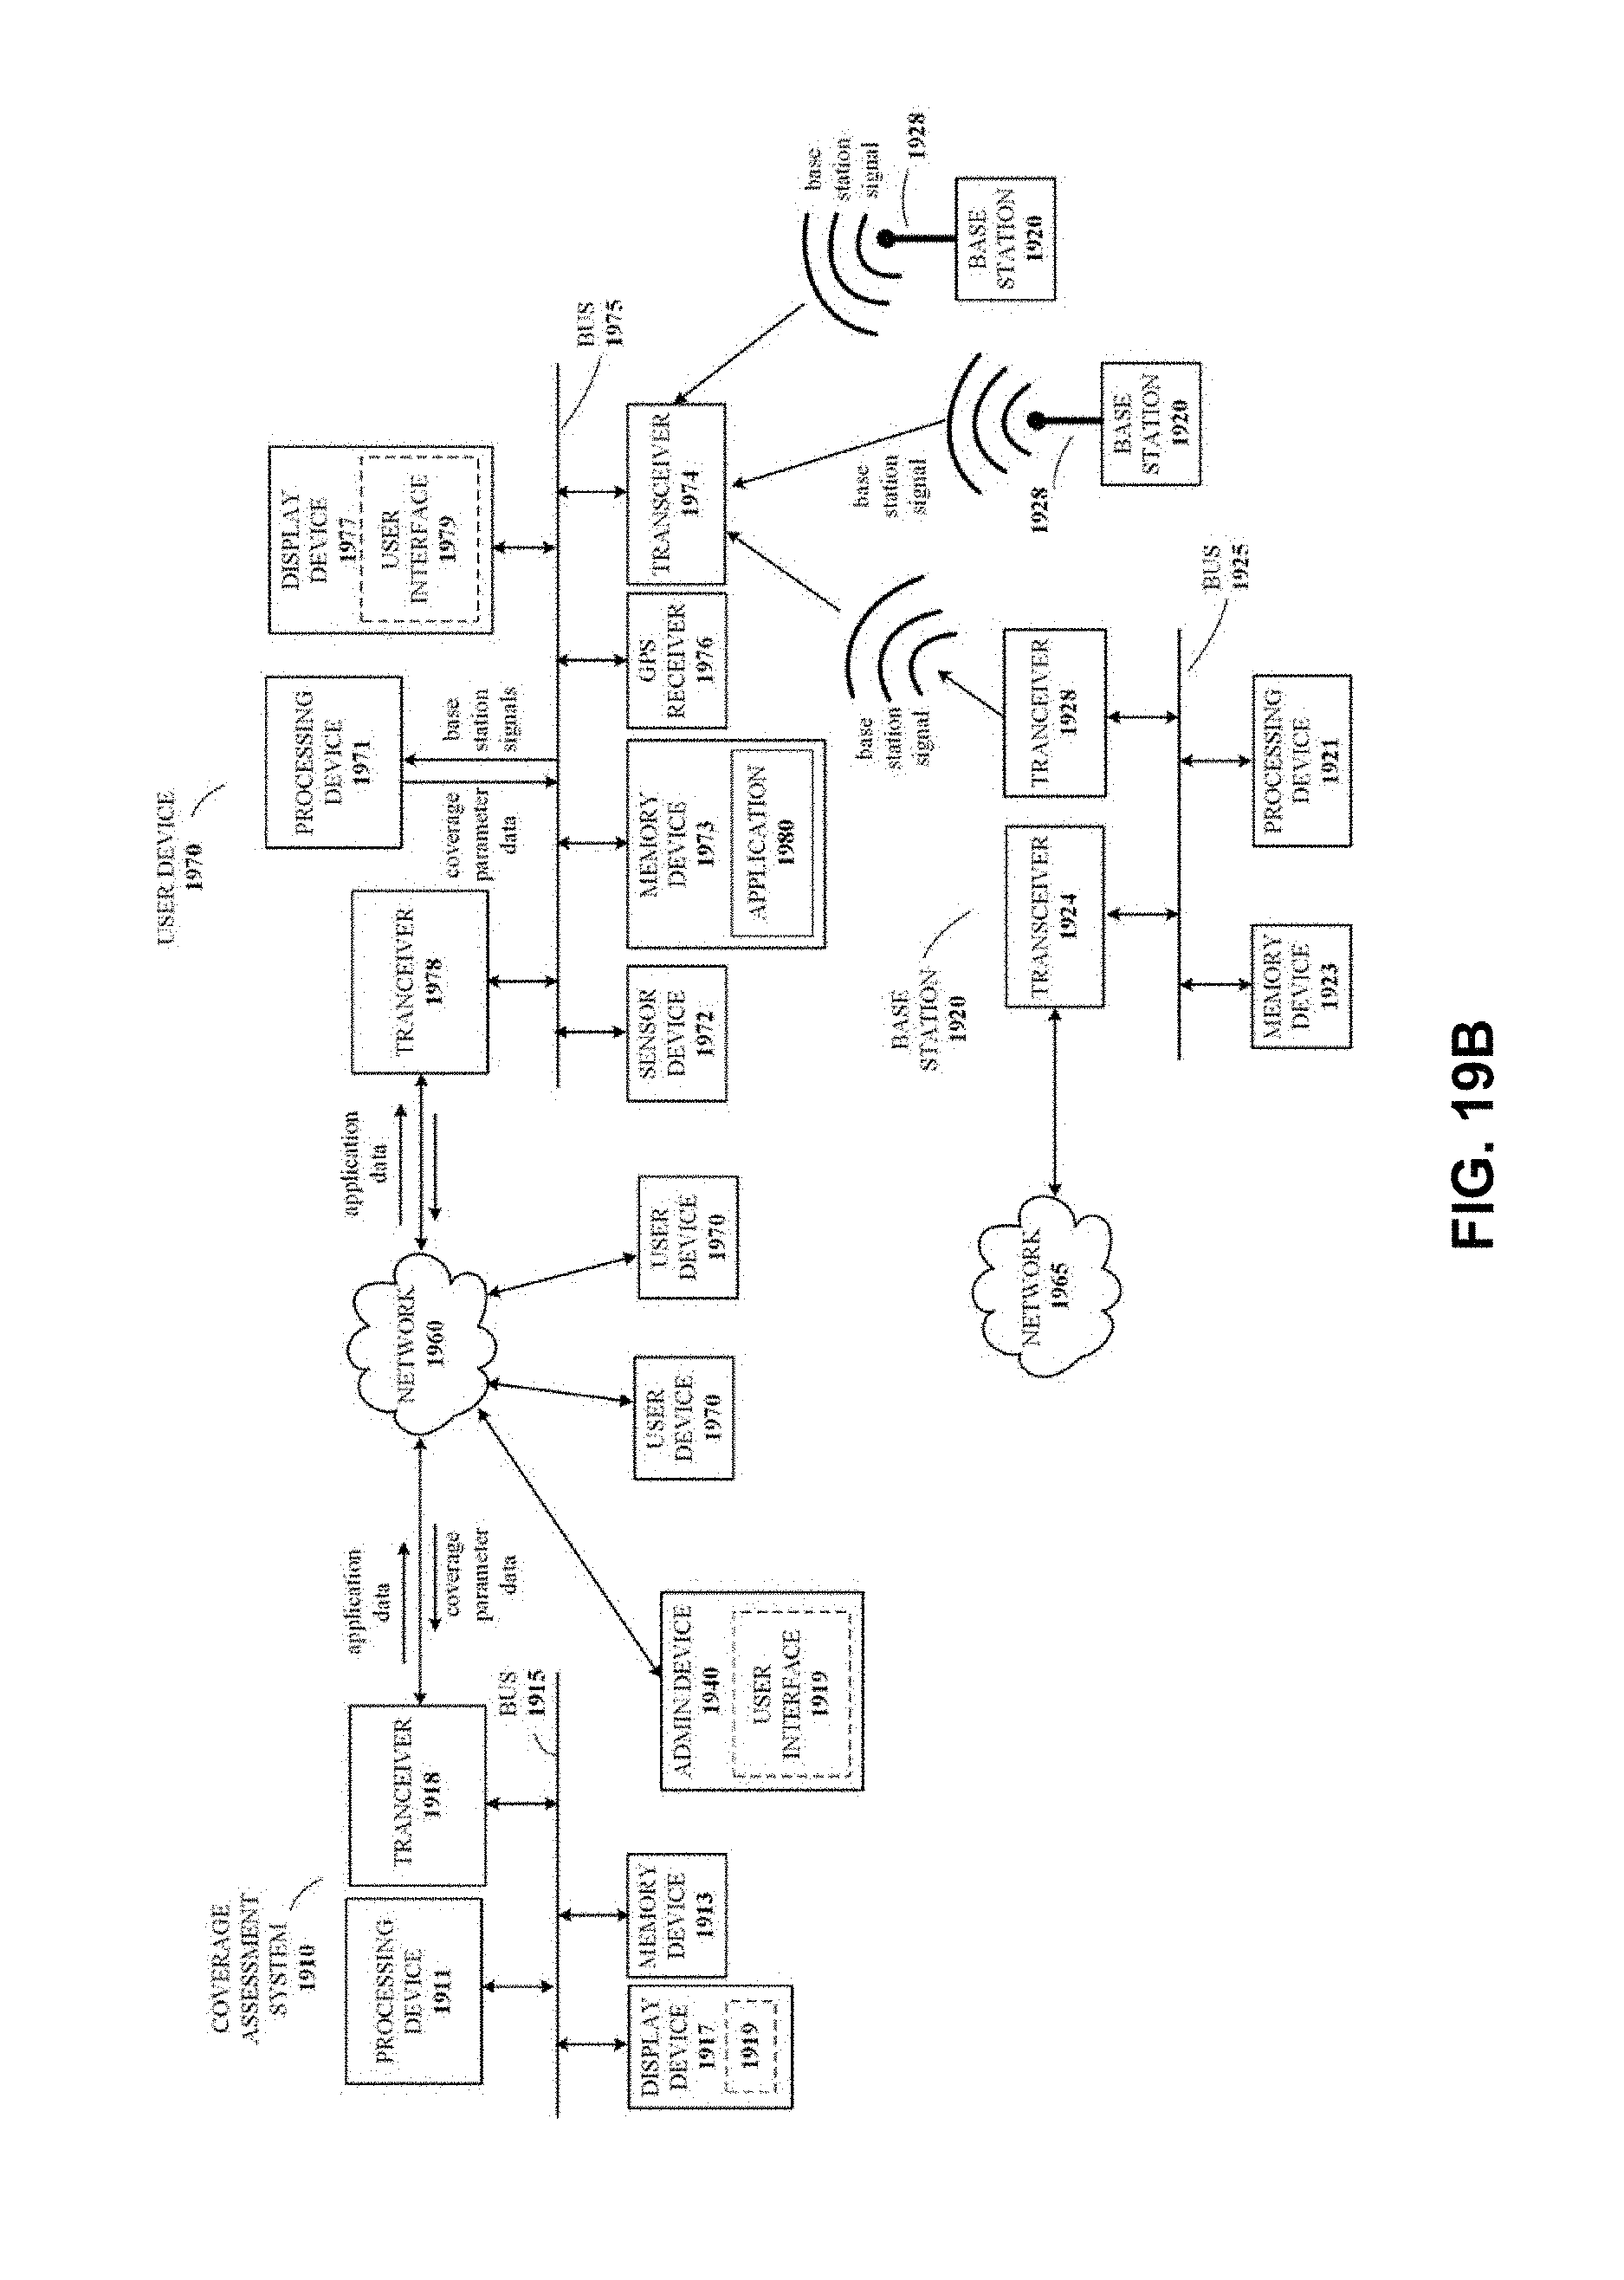 Us9838896b1 Method And Apparatus For Assessing Network Coverage Circuit Diagram As Well Solar Water Heater Additionally Shunt Wound Dc Google Patents